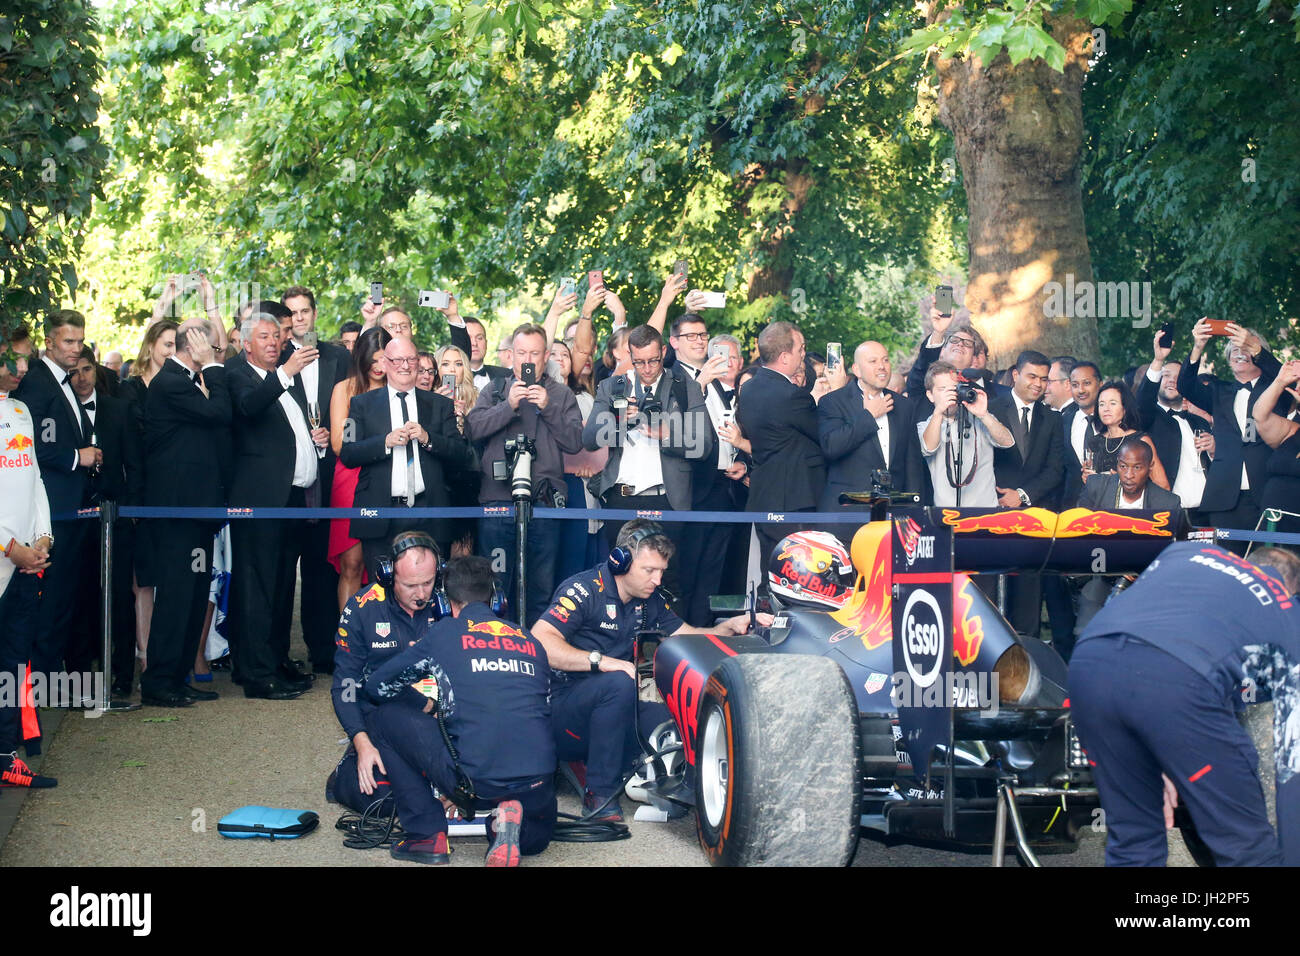 London, 12. Juni 2017. Grand Prix Ball, Prominente, Autos und Fahrer im Hurlingham Club. Expo-Foto/Alamy Live-Nachrichten Stockfoto